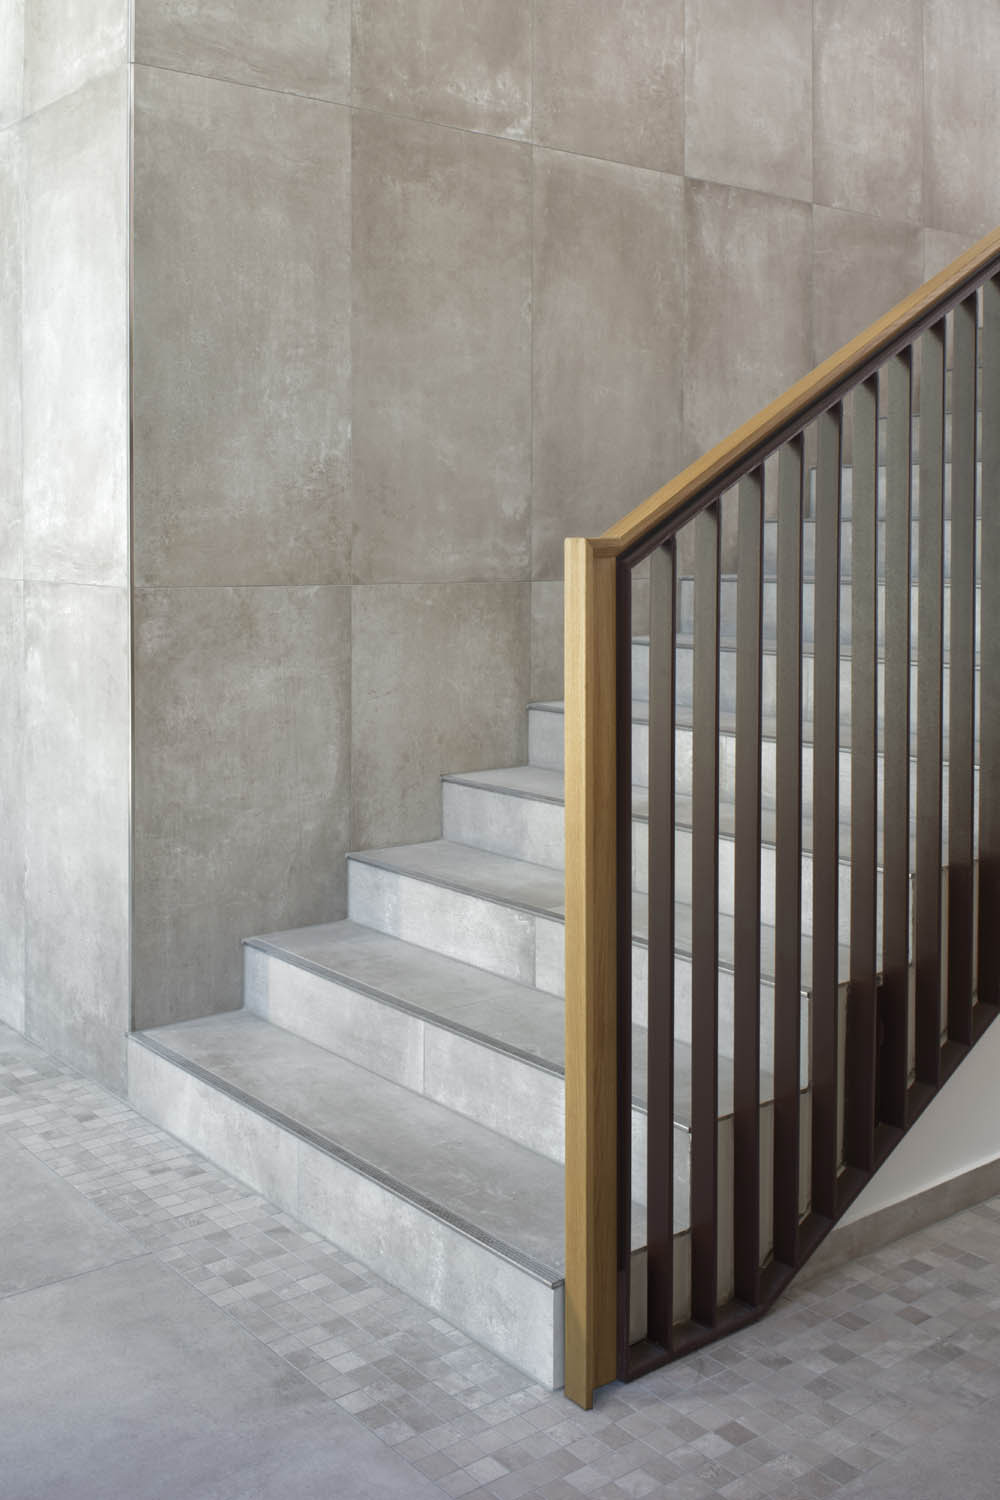 Detail of the staircase Werner Huthmacher